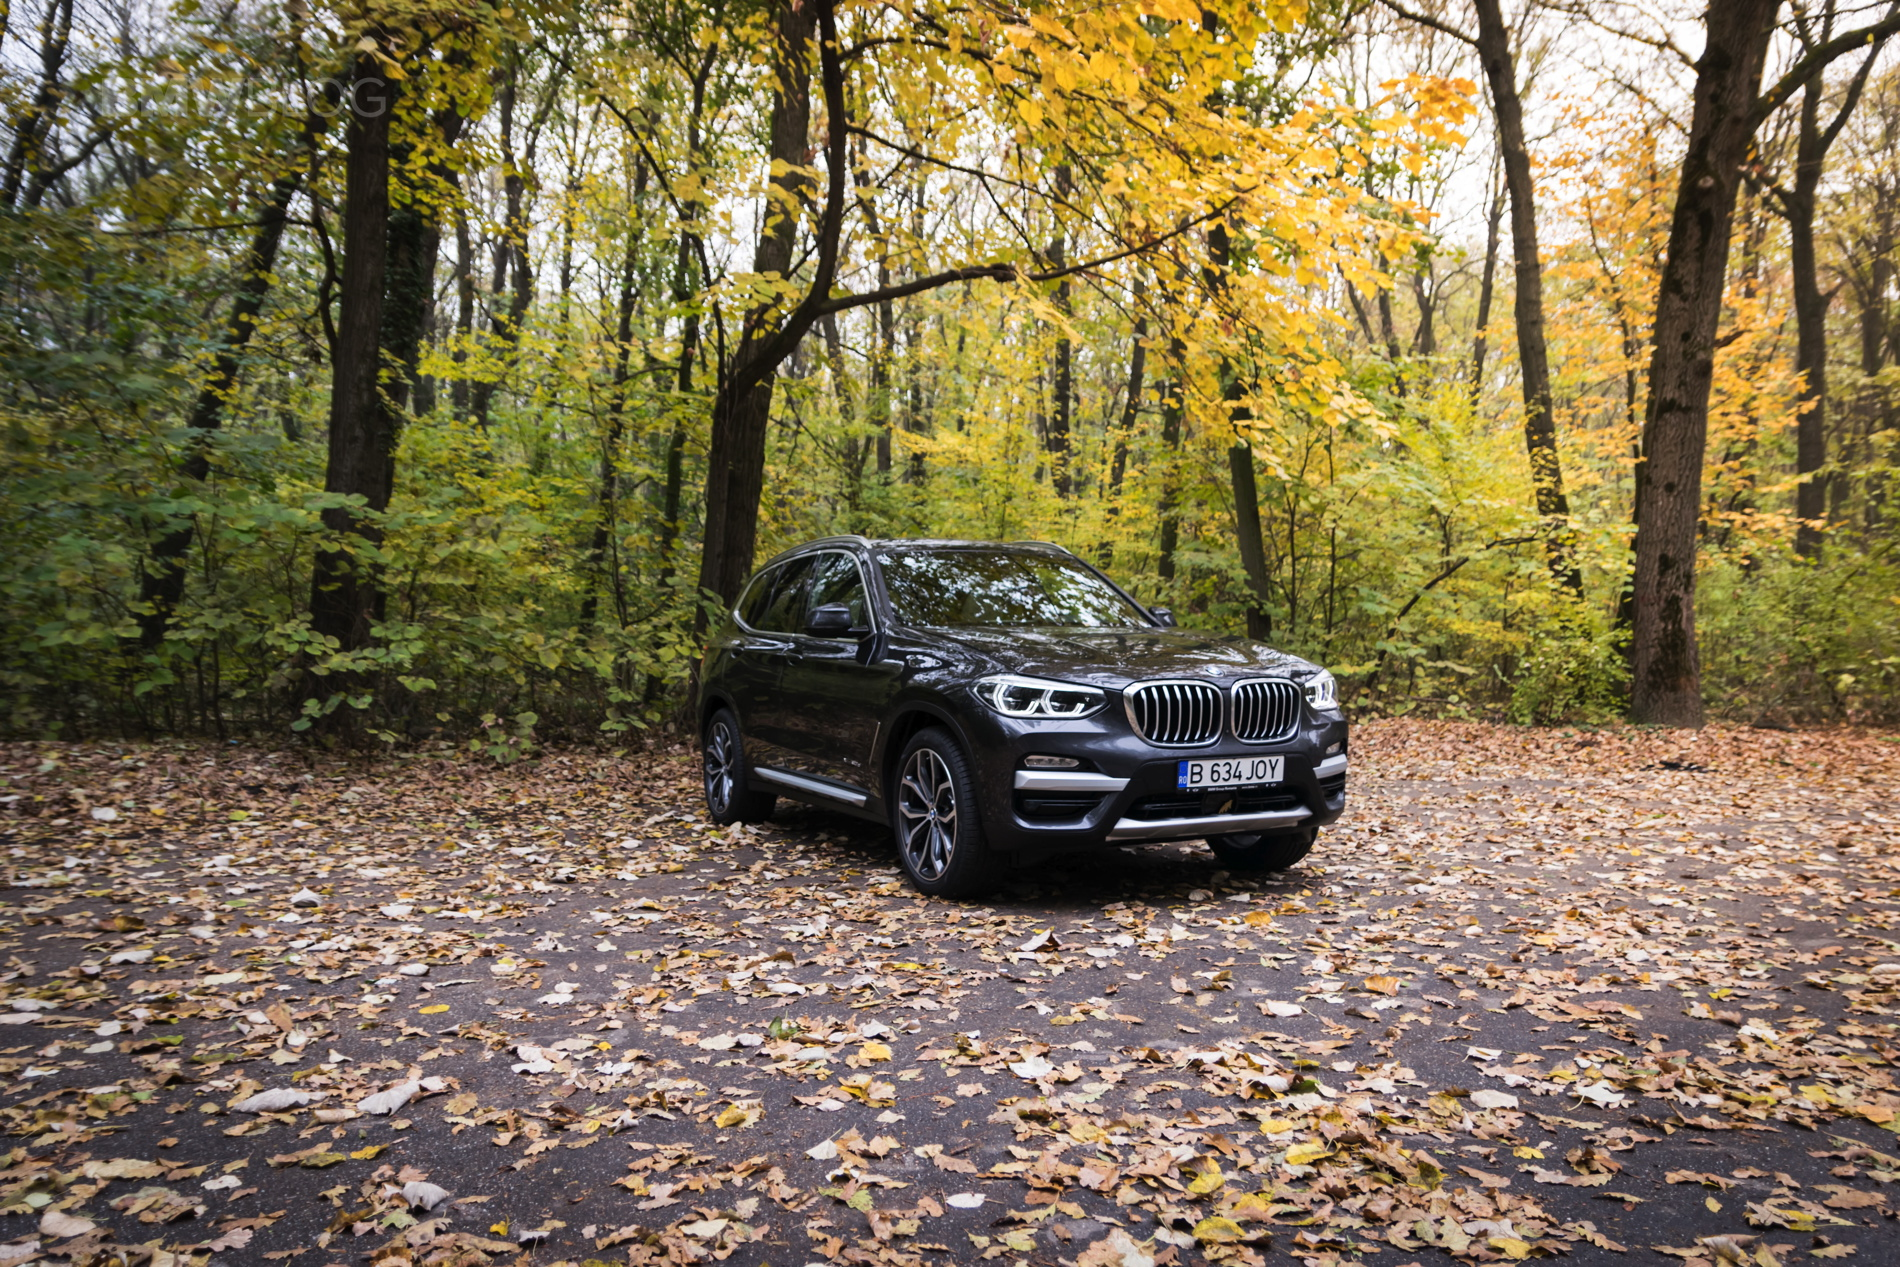 2017 BMW X3 xDrive20d test drive review 31